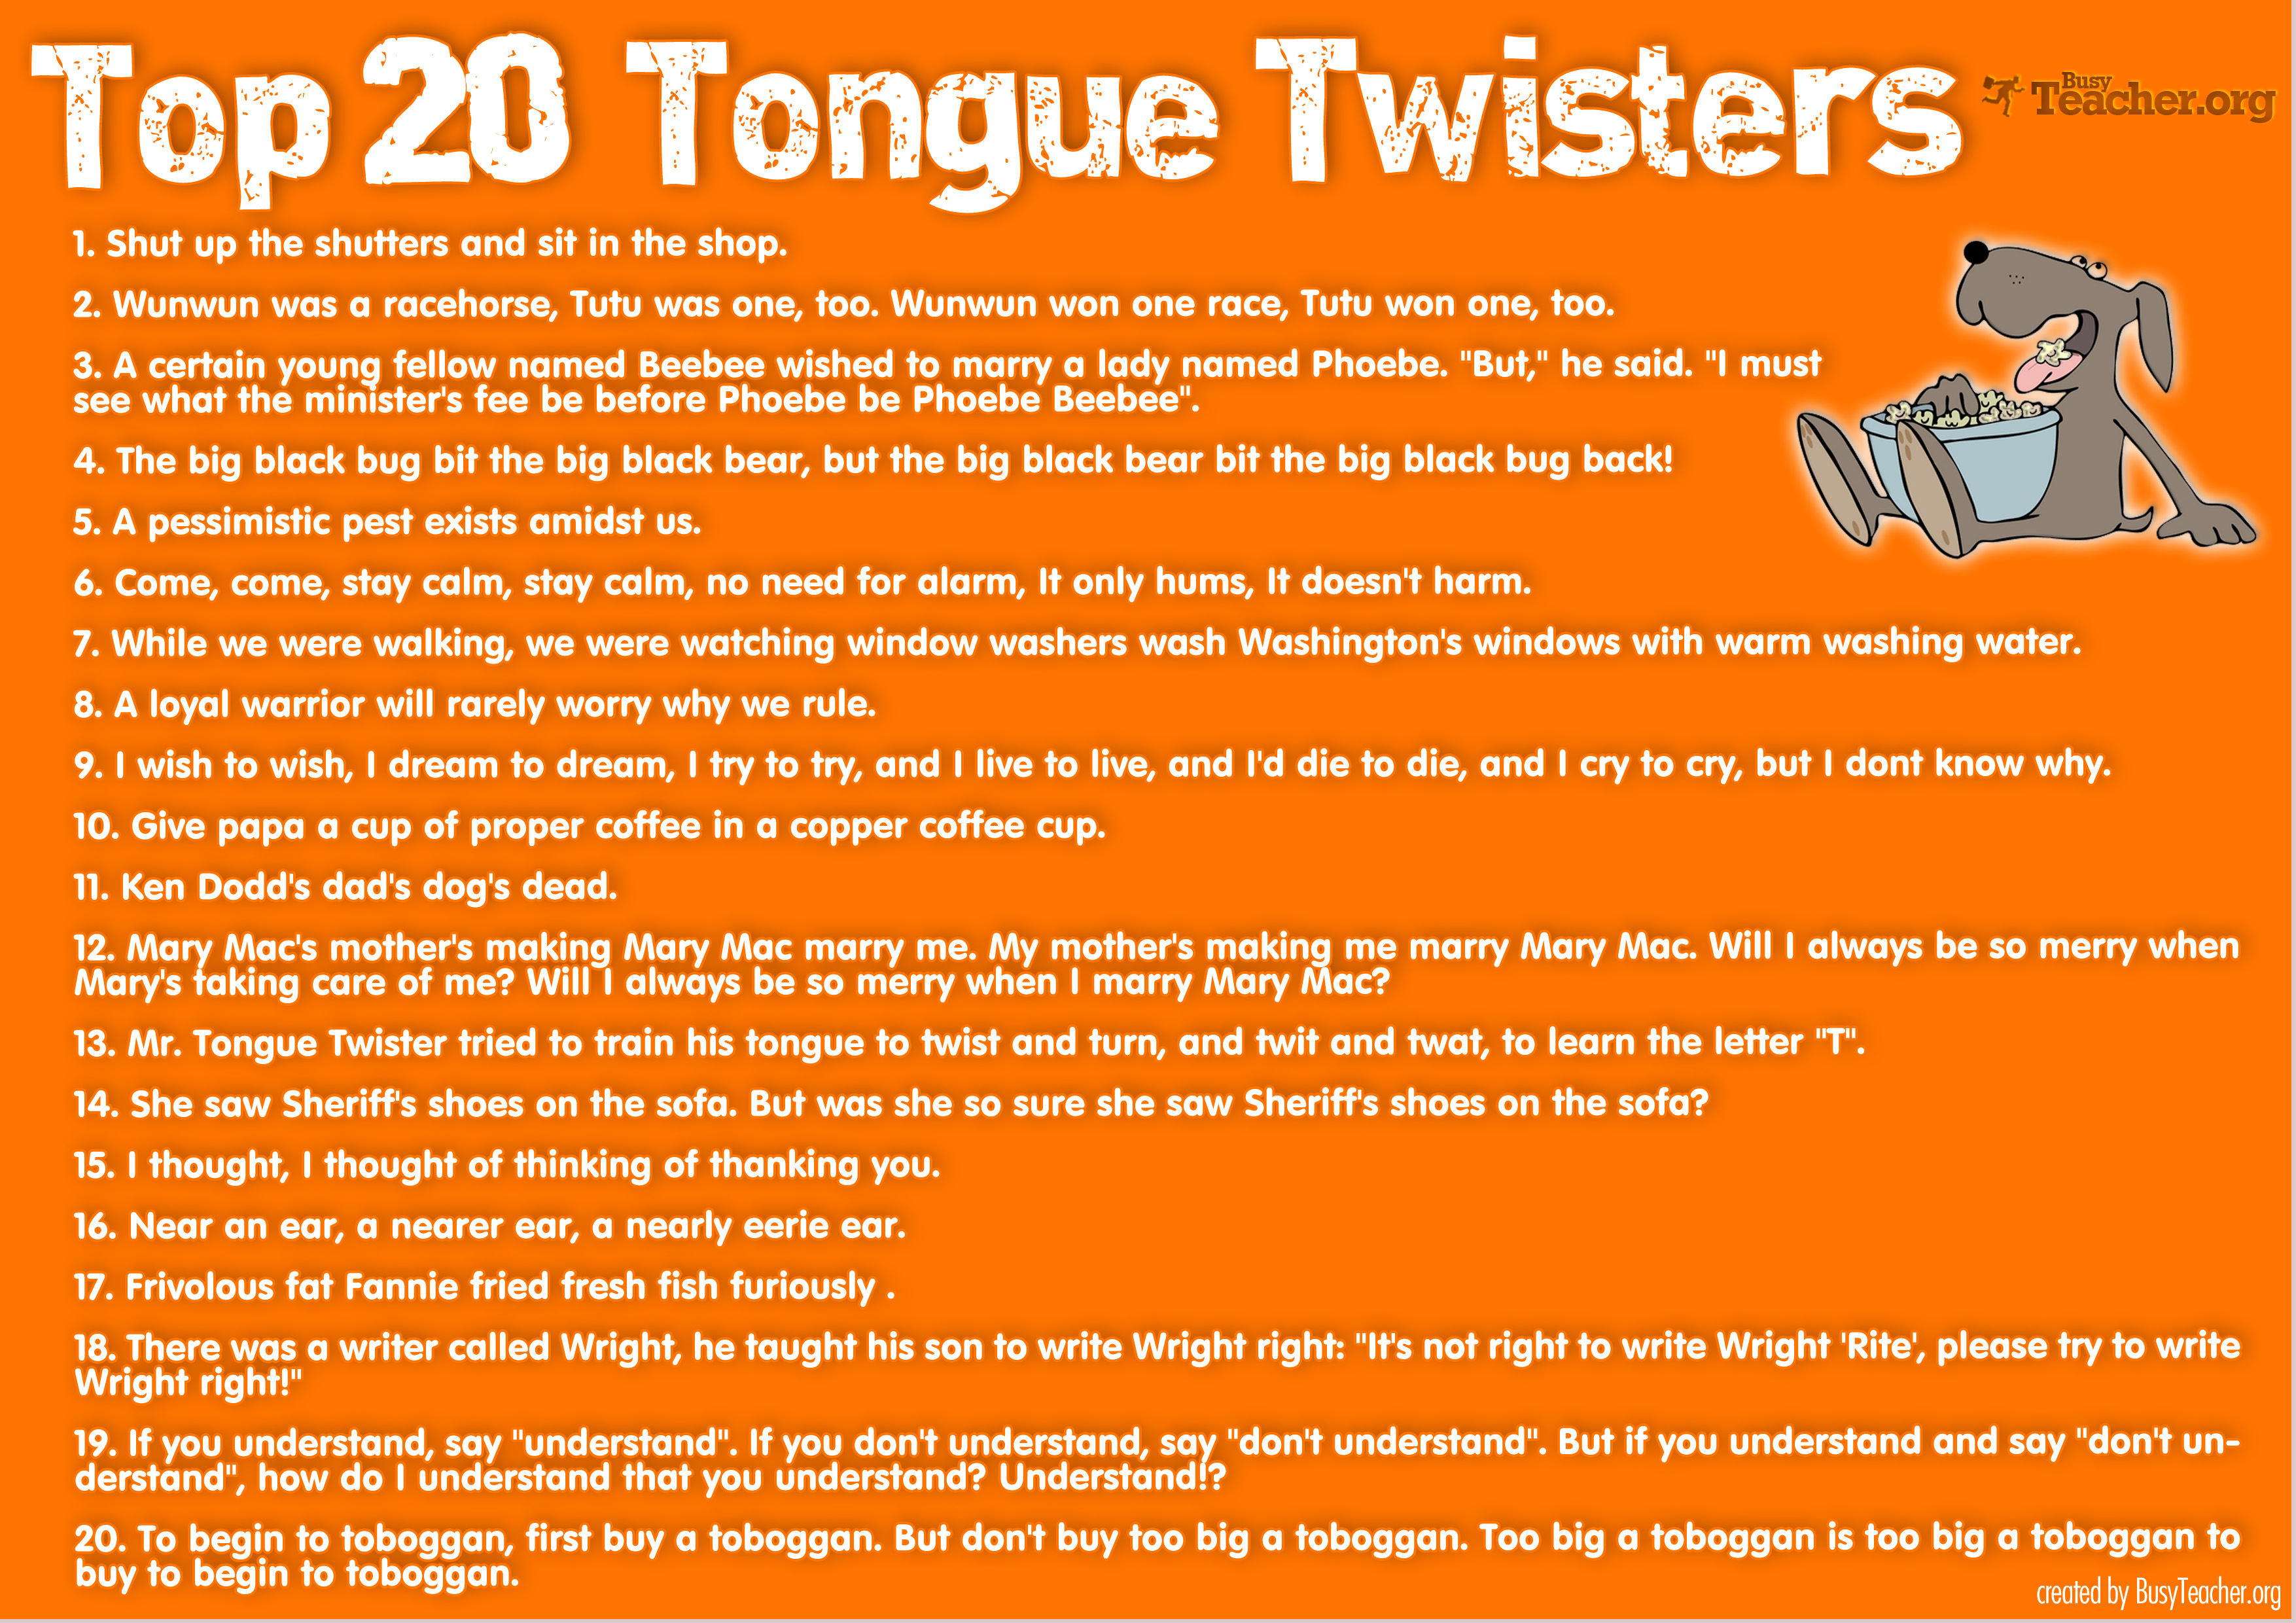 Top 20 Tongue Twisters Poster